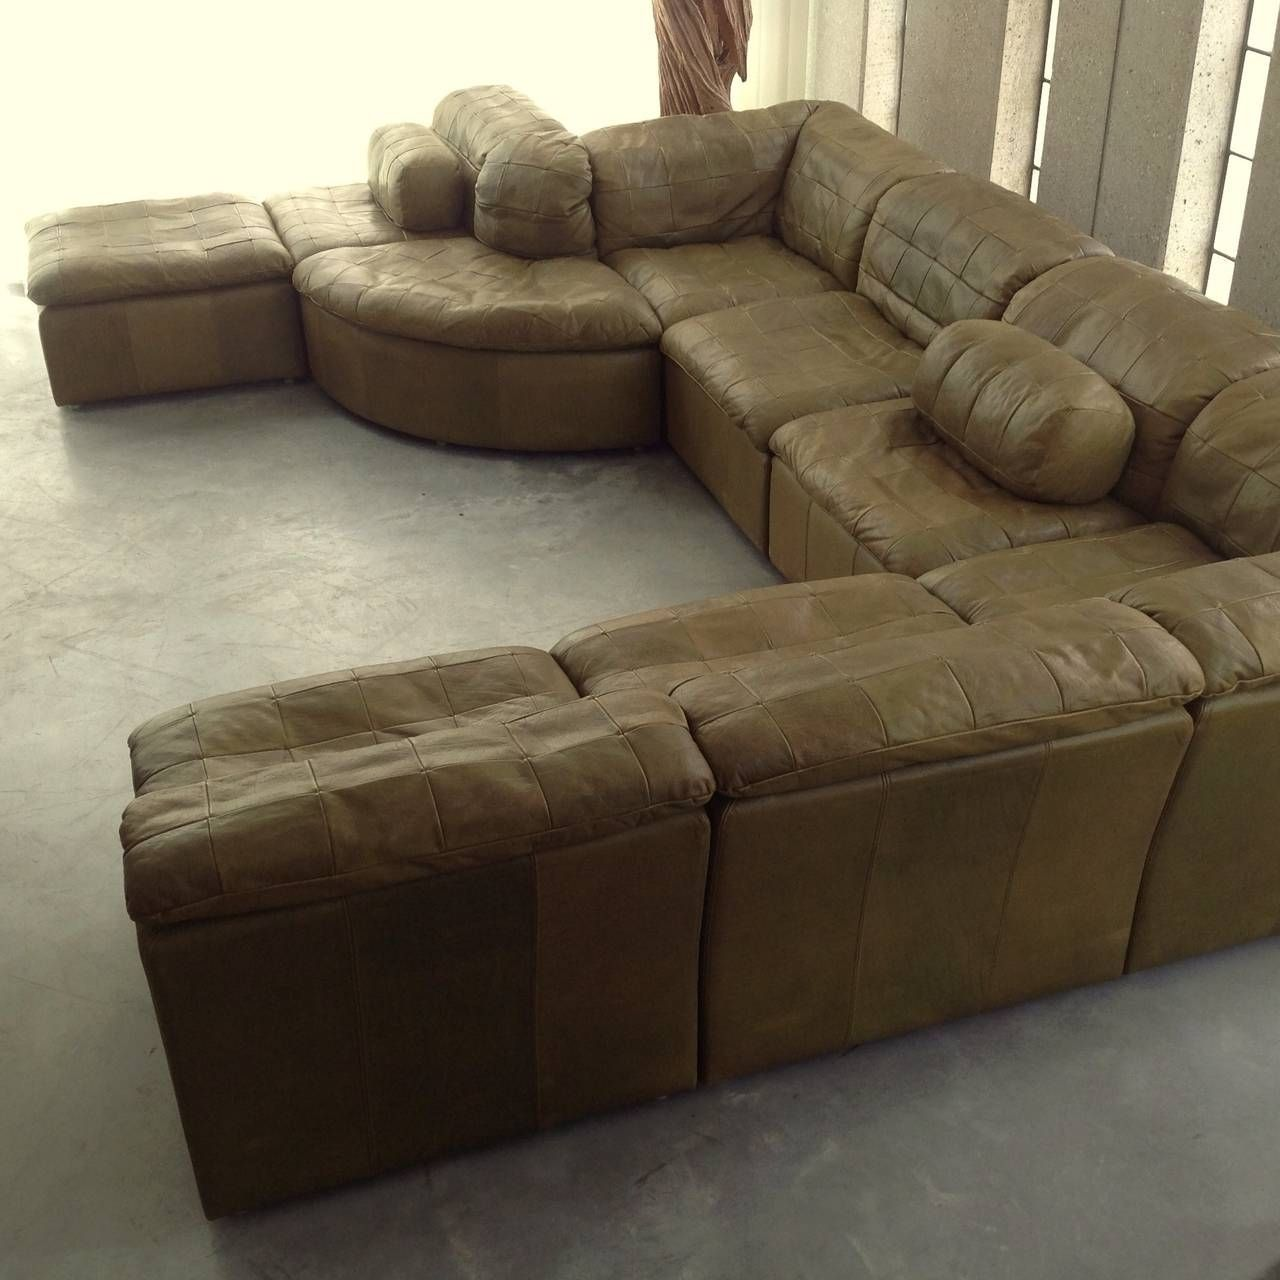 Superb Olive Green Leather Sectional Sofa Leather Couch Sectional Lamtechconsult Wood Chair Design Ideas Lamtechconsultcom